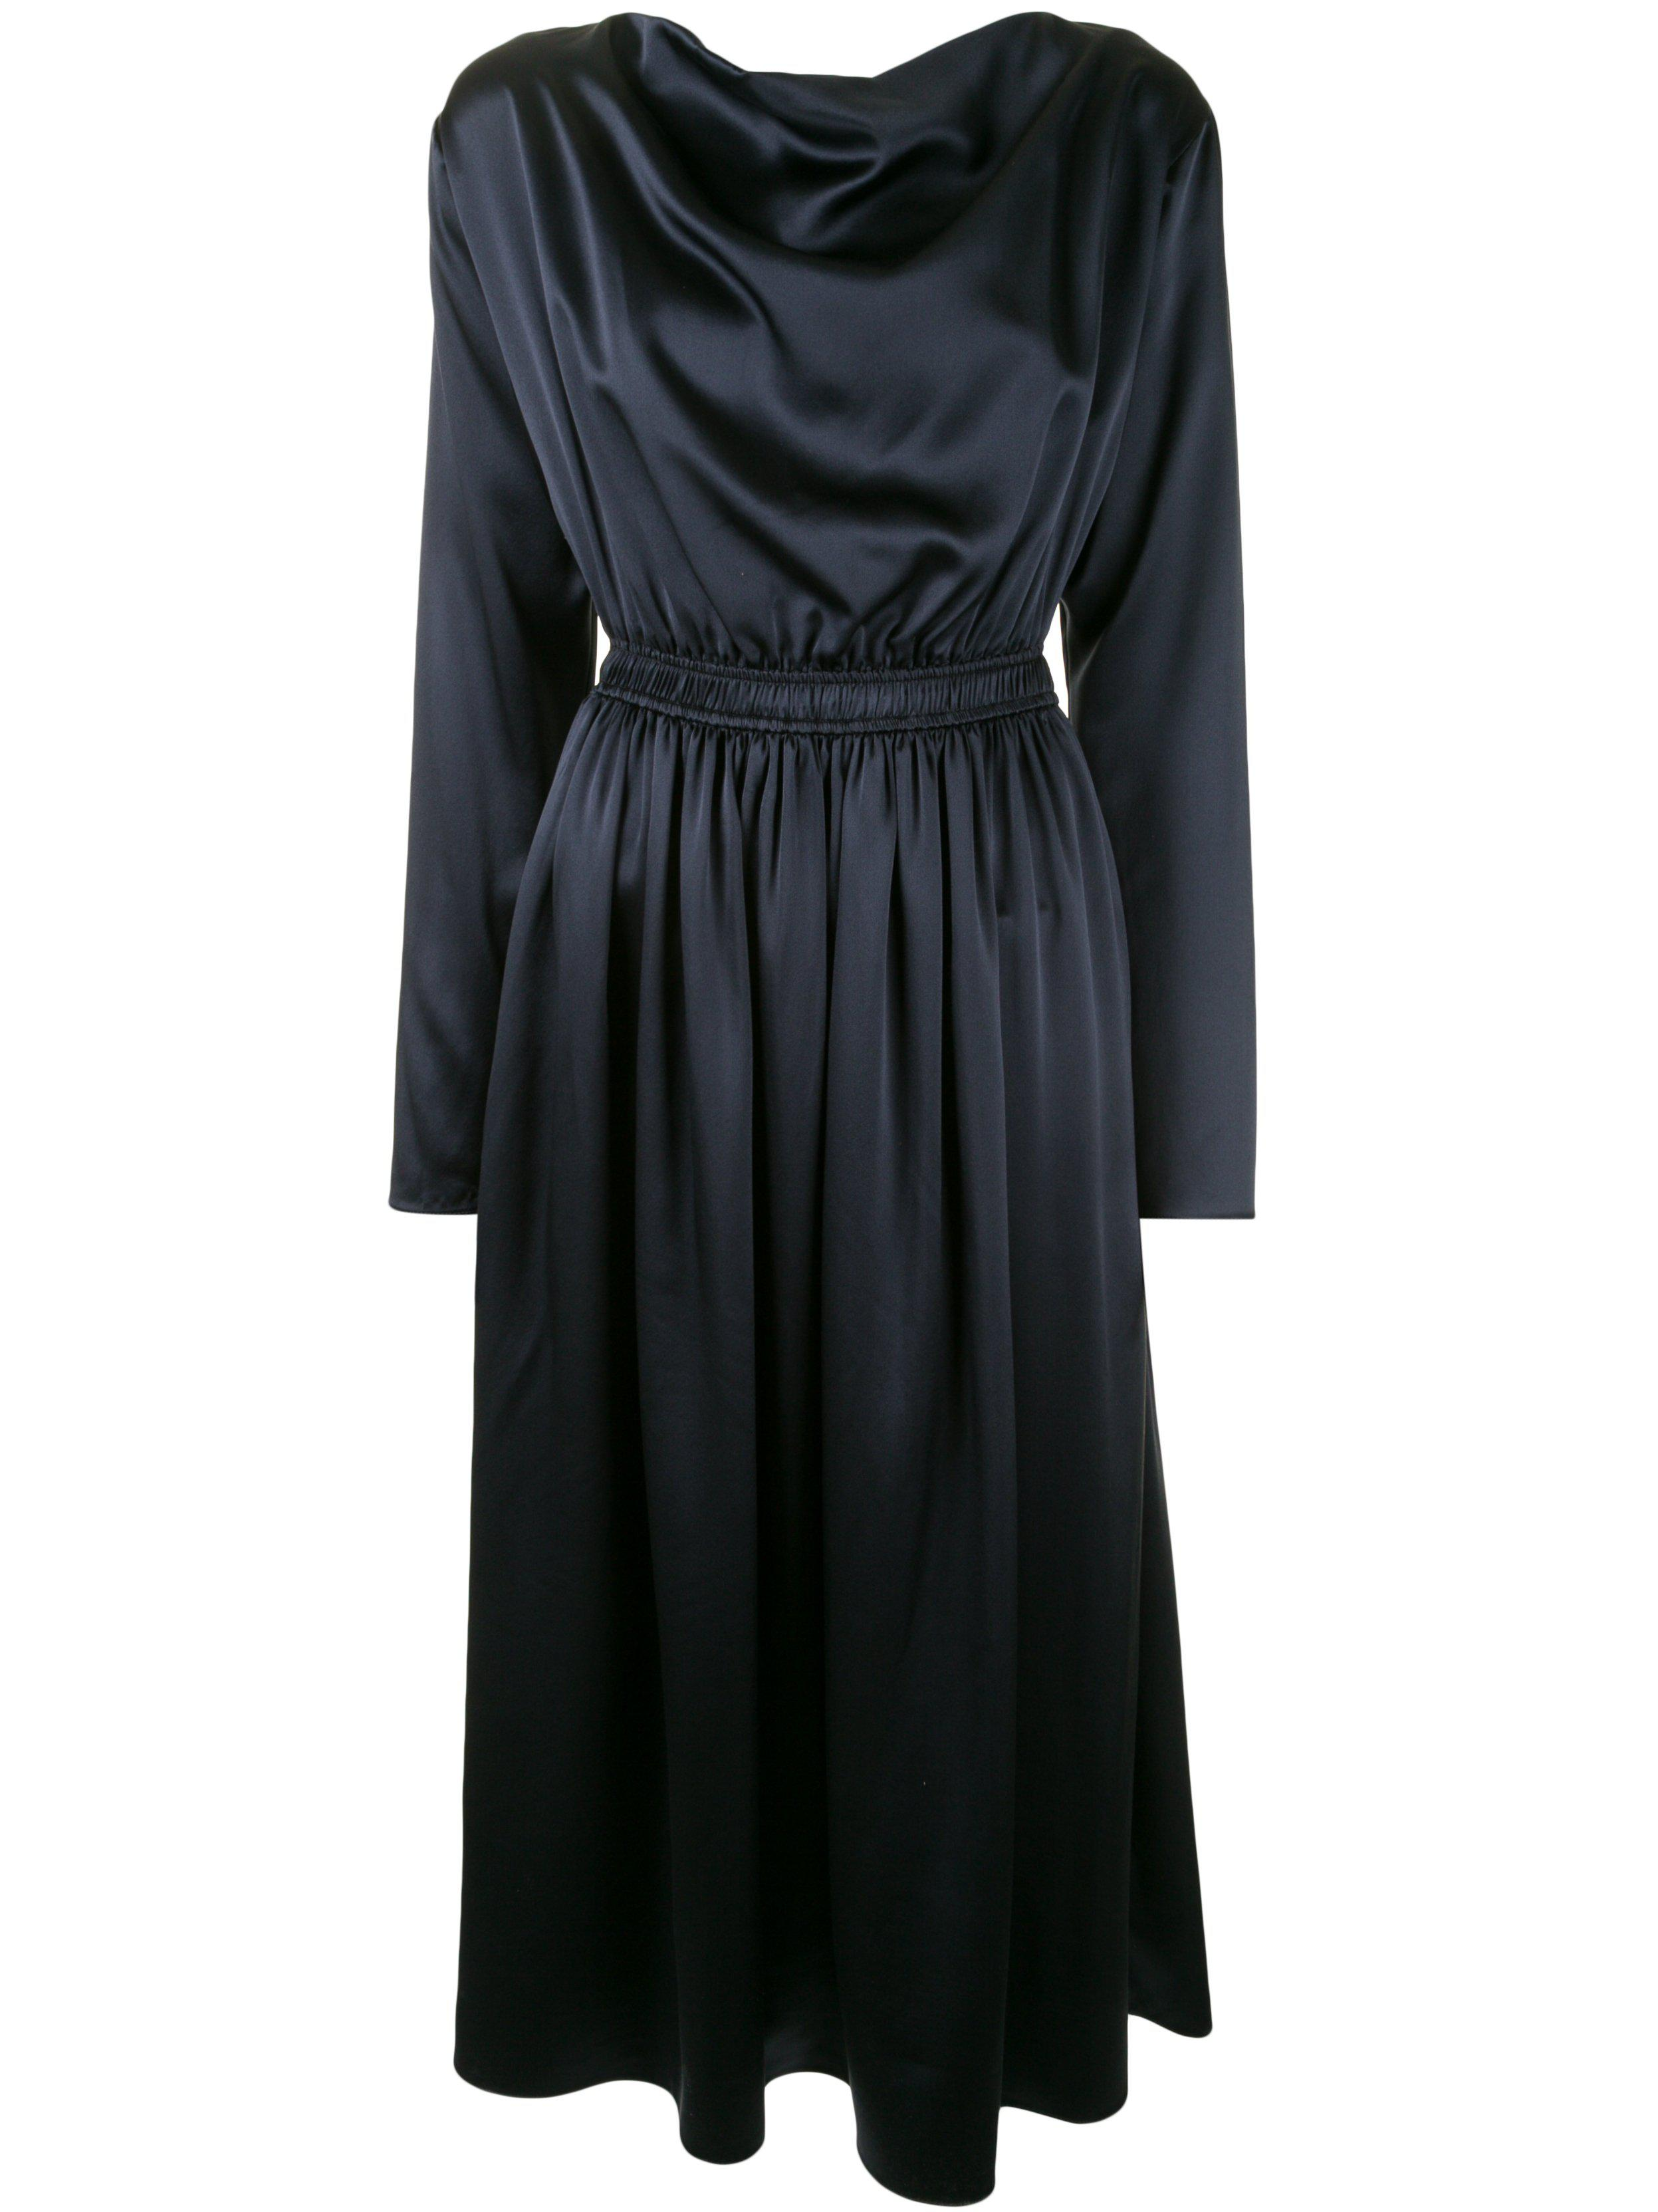 COWL NECK DRESS IN SILK CHARMEUSE 1